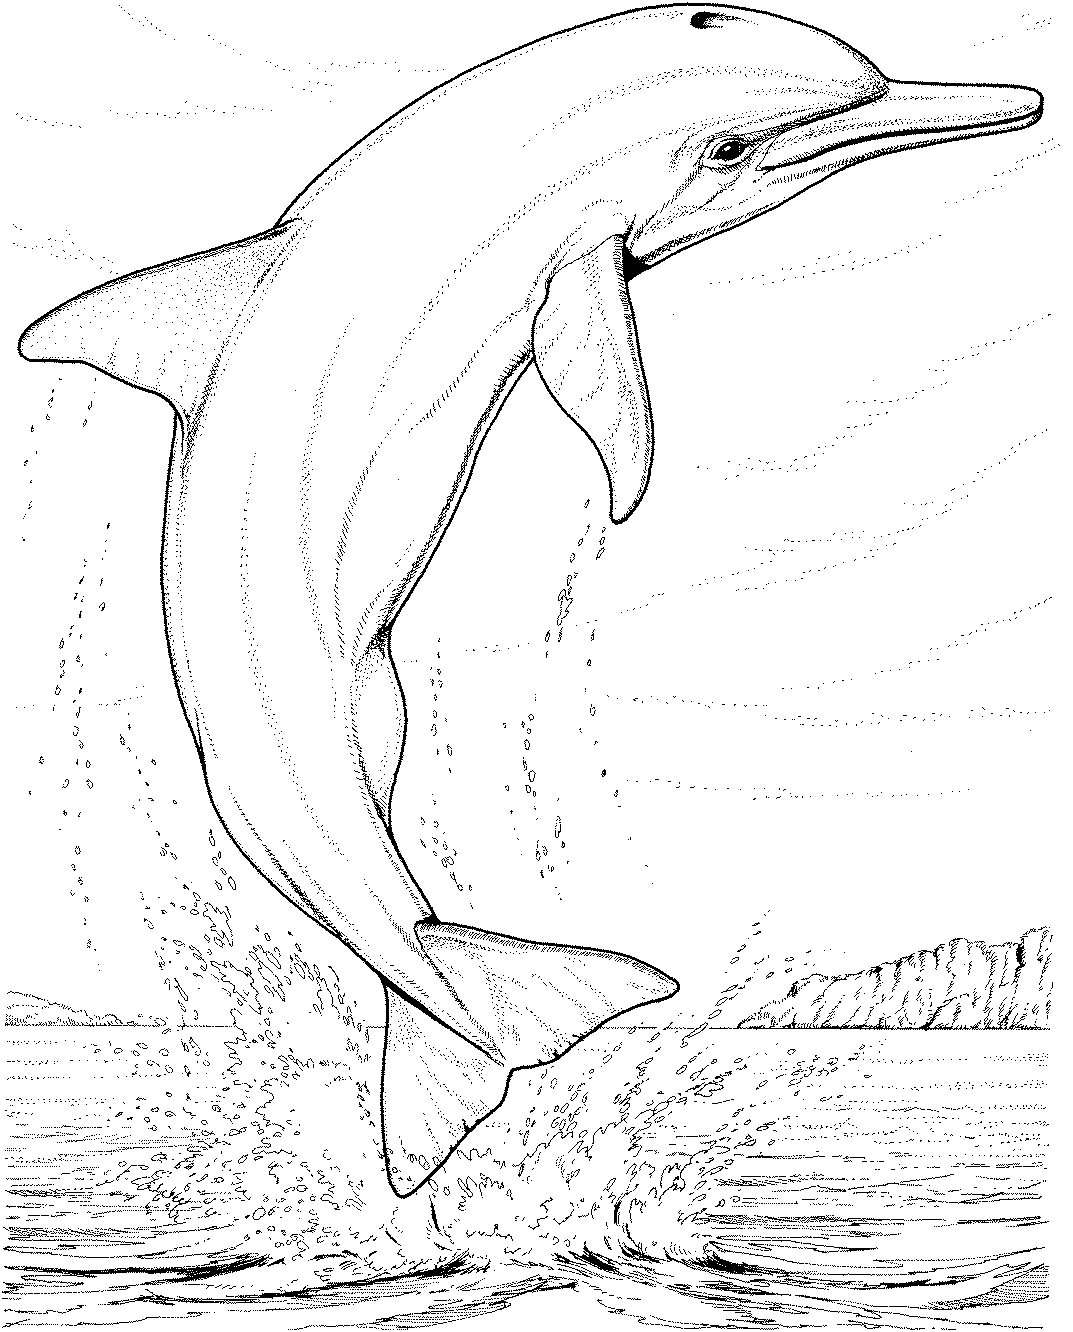 coloring sheet dolphin spinner dolphin drawing at getdrawings free download sheet coloring dolphin